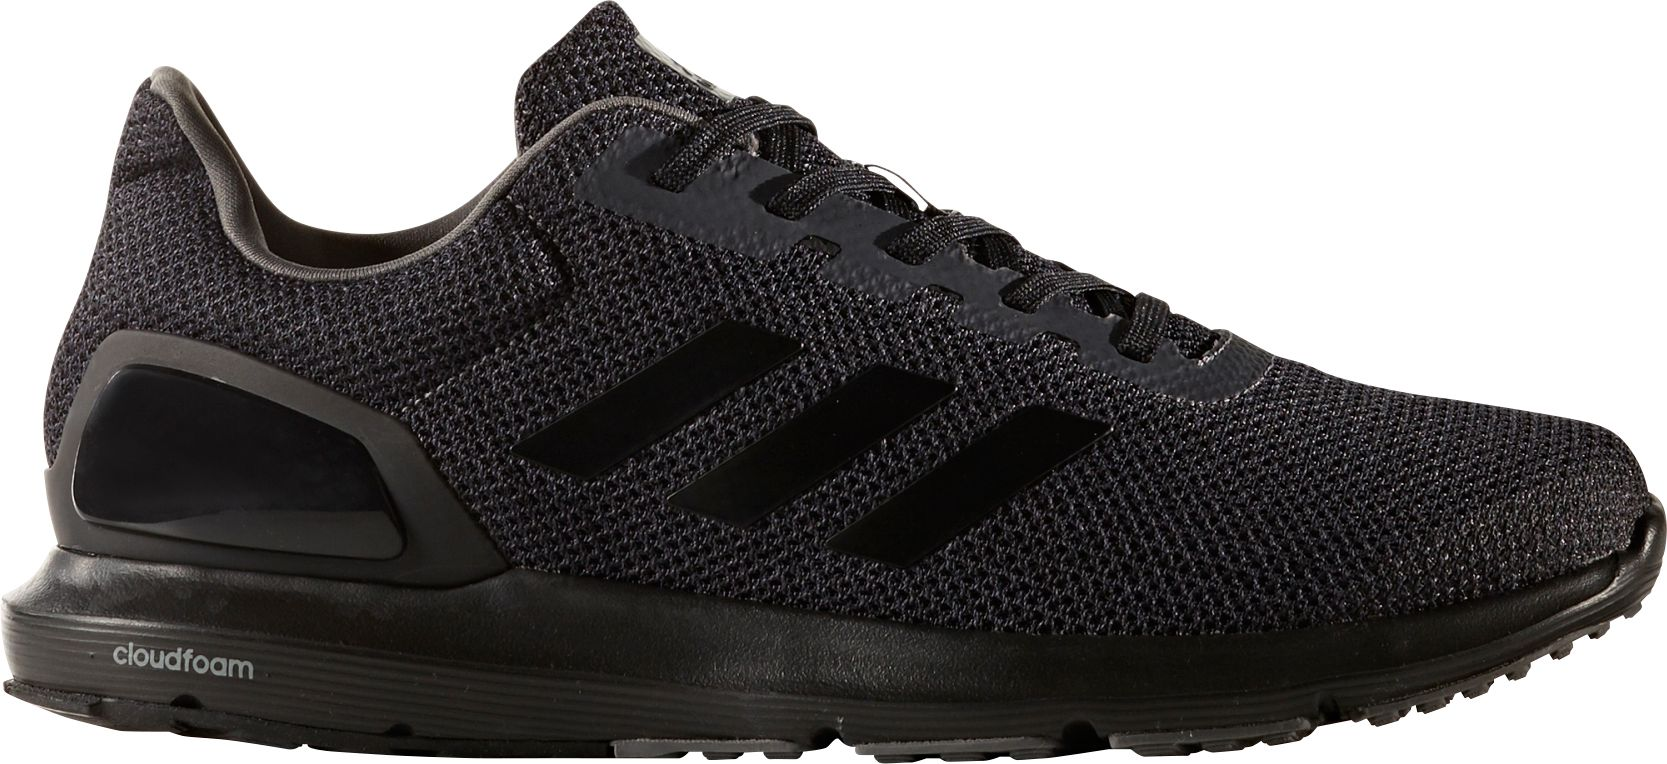 adidas mens running shoes